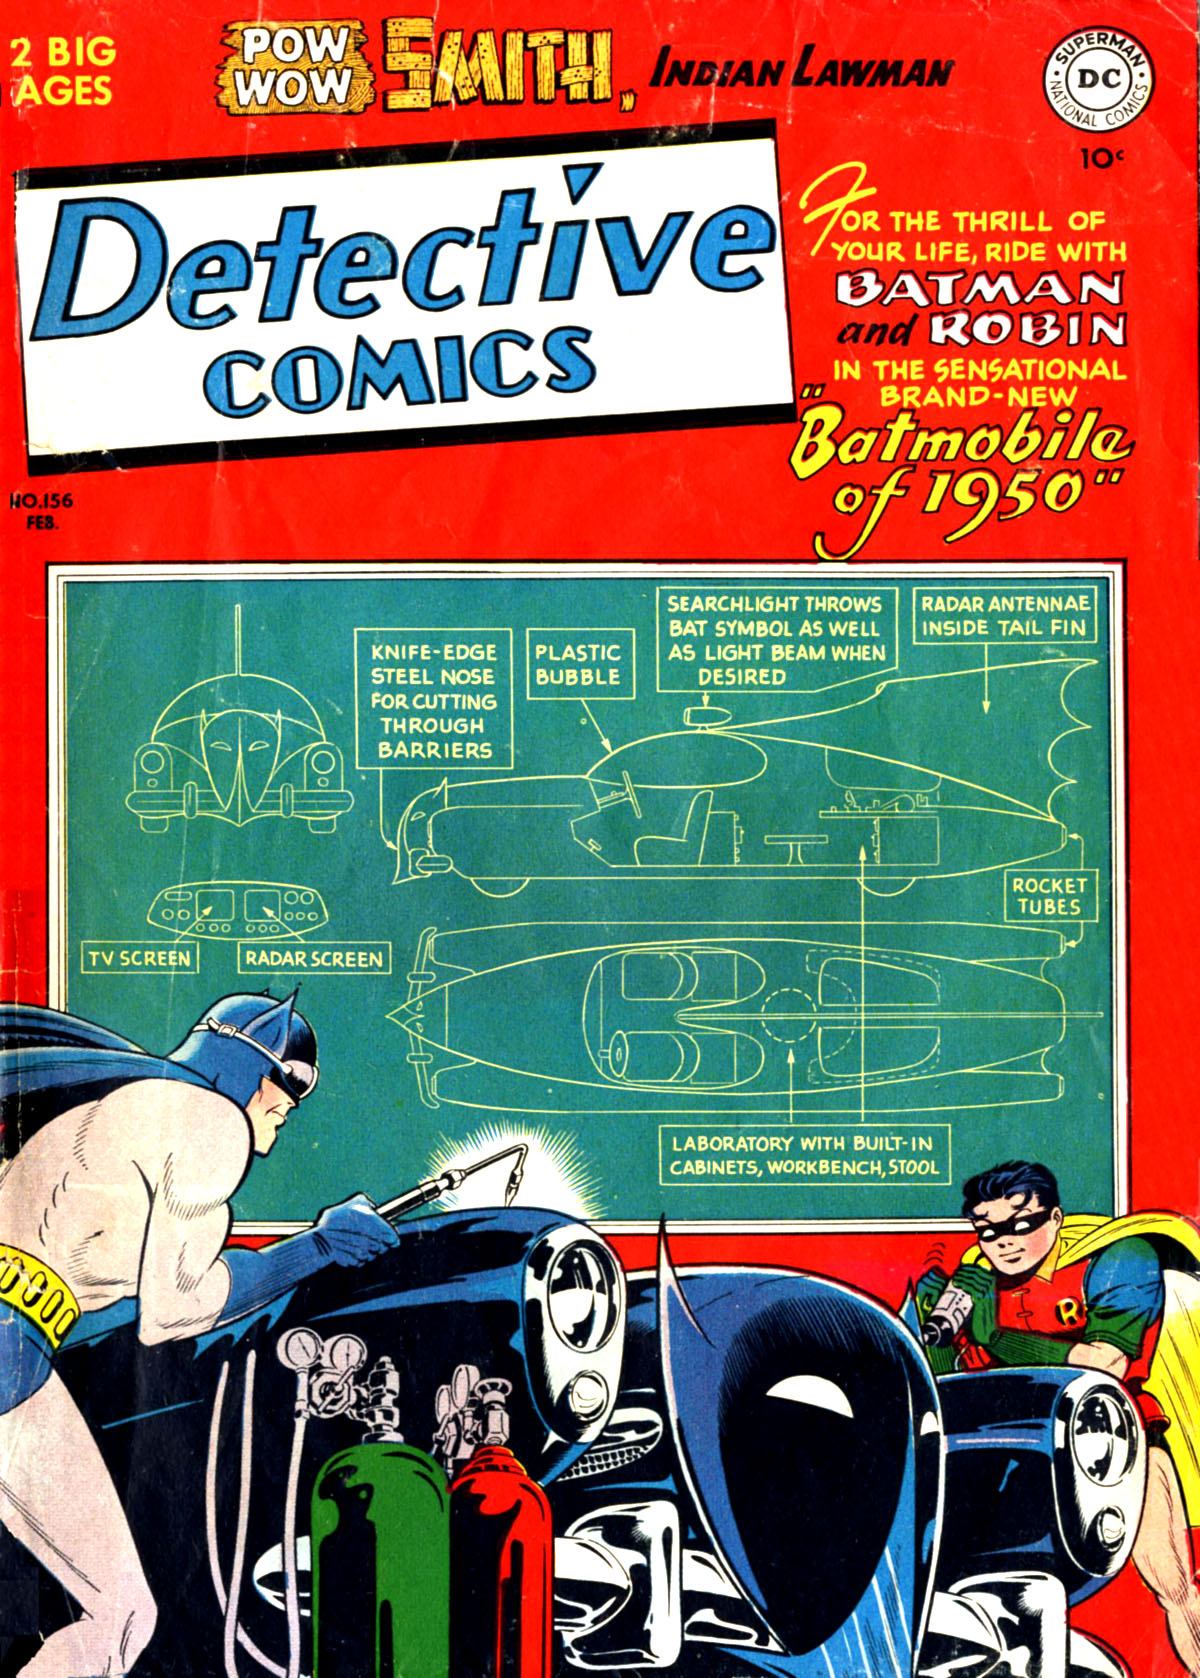 Read online Detective Comics (1937) comic -  Issue #156 - 1